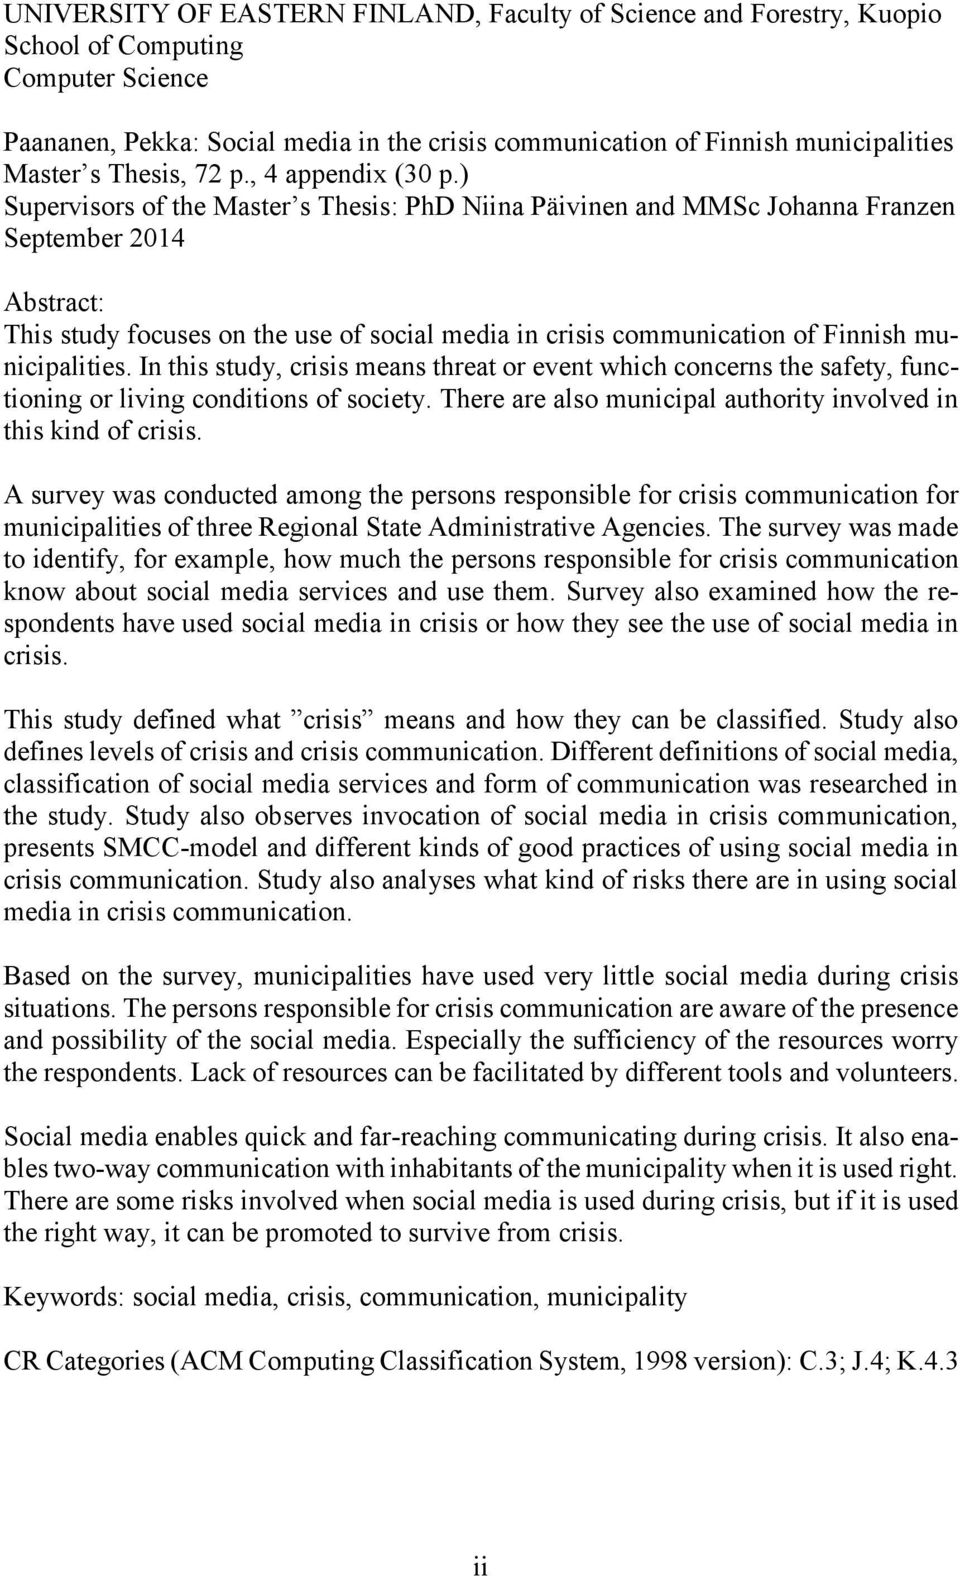 ) Supervisors of the Master s Thesis: PhD Niina Päivinen and MMSc Johanna Franzen September 2014 Abstract: This study focuses on the use of social media in crisis communication of Finnish